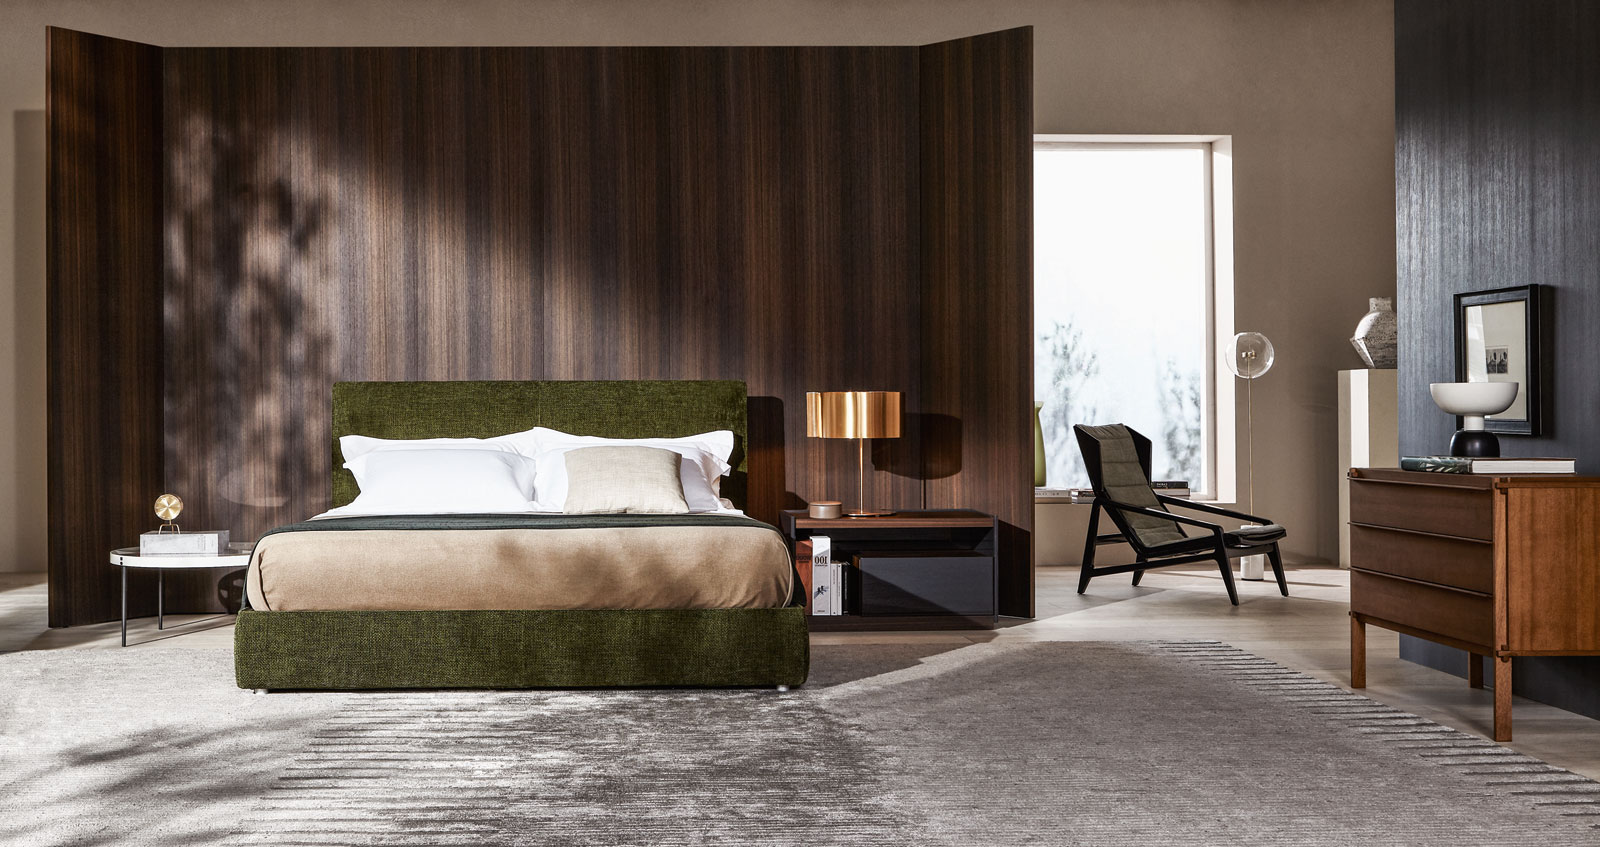 Modern bedroom furniture designs from Italian company Molteni&C.